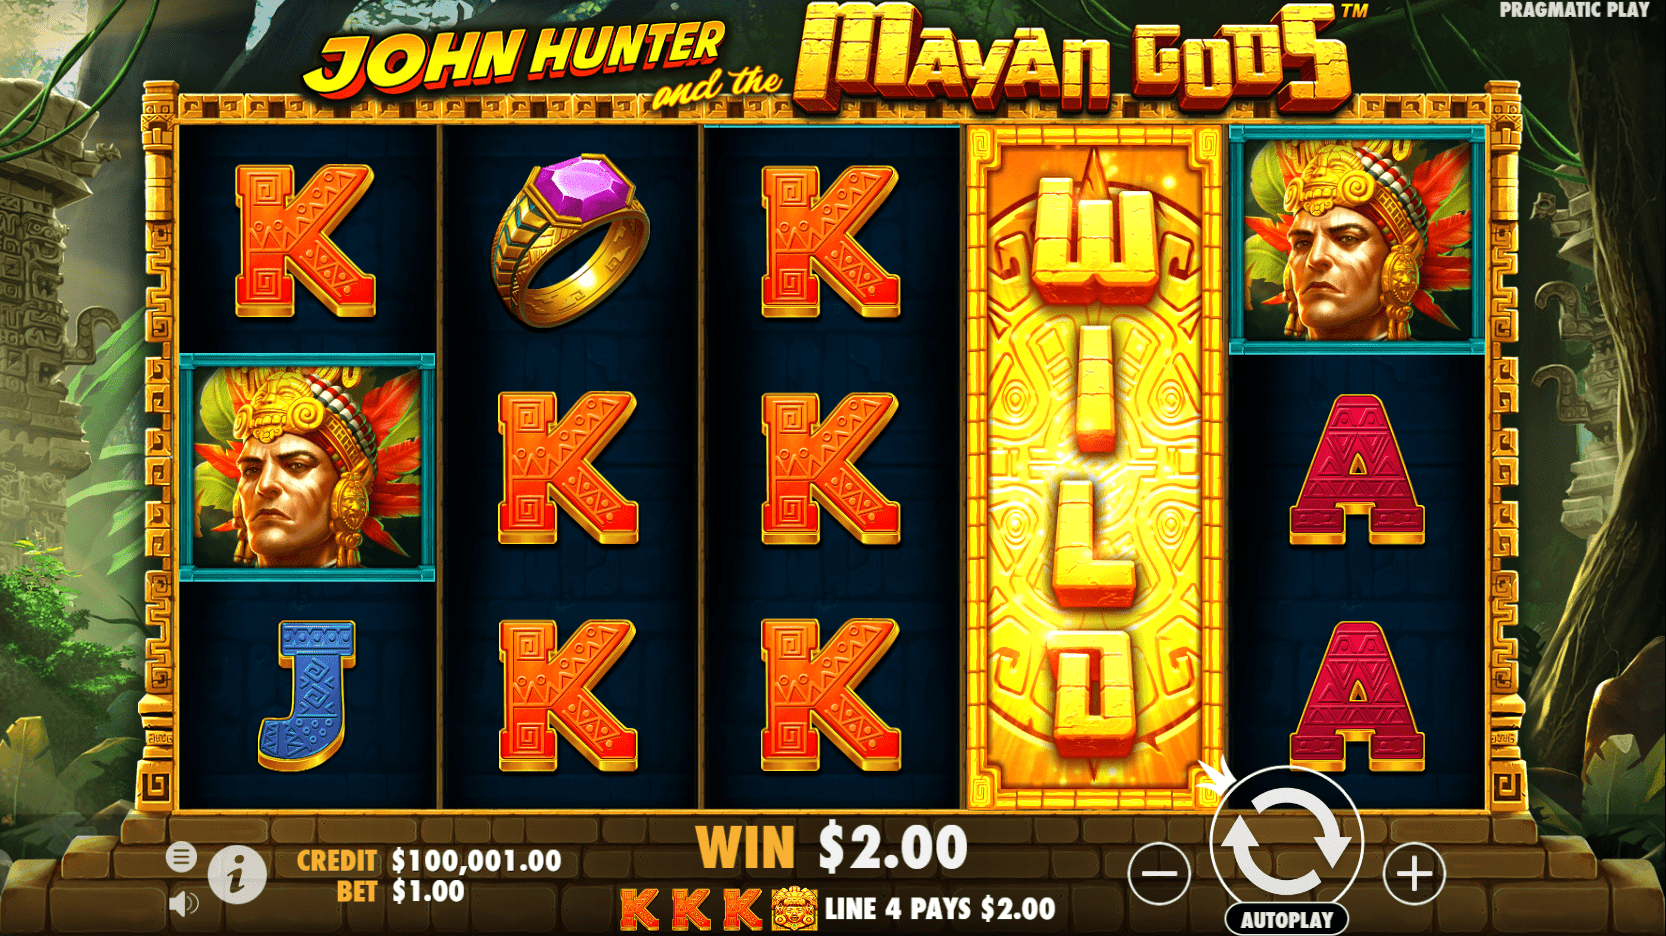 John Hunter and the Mayan Gods video slot Wild hit